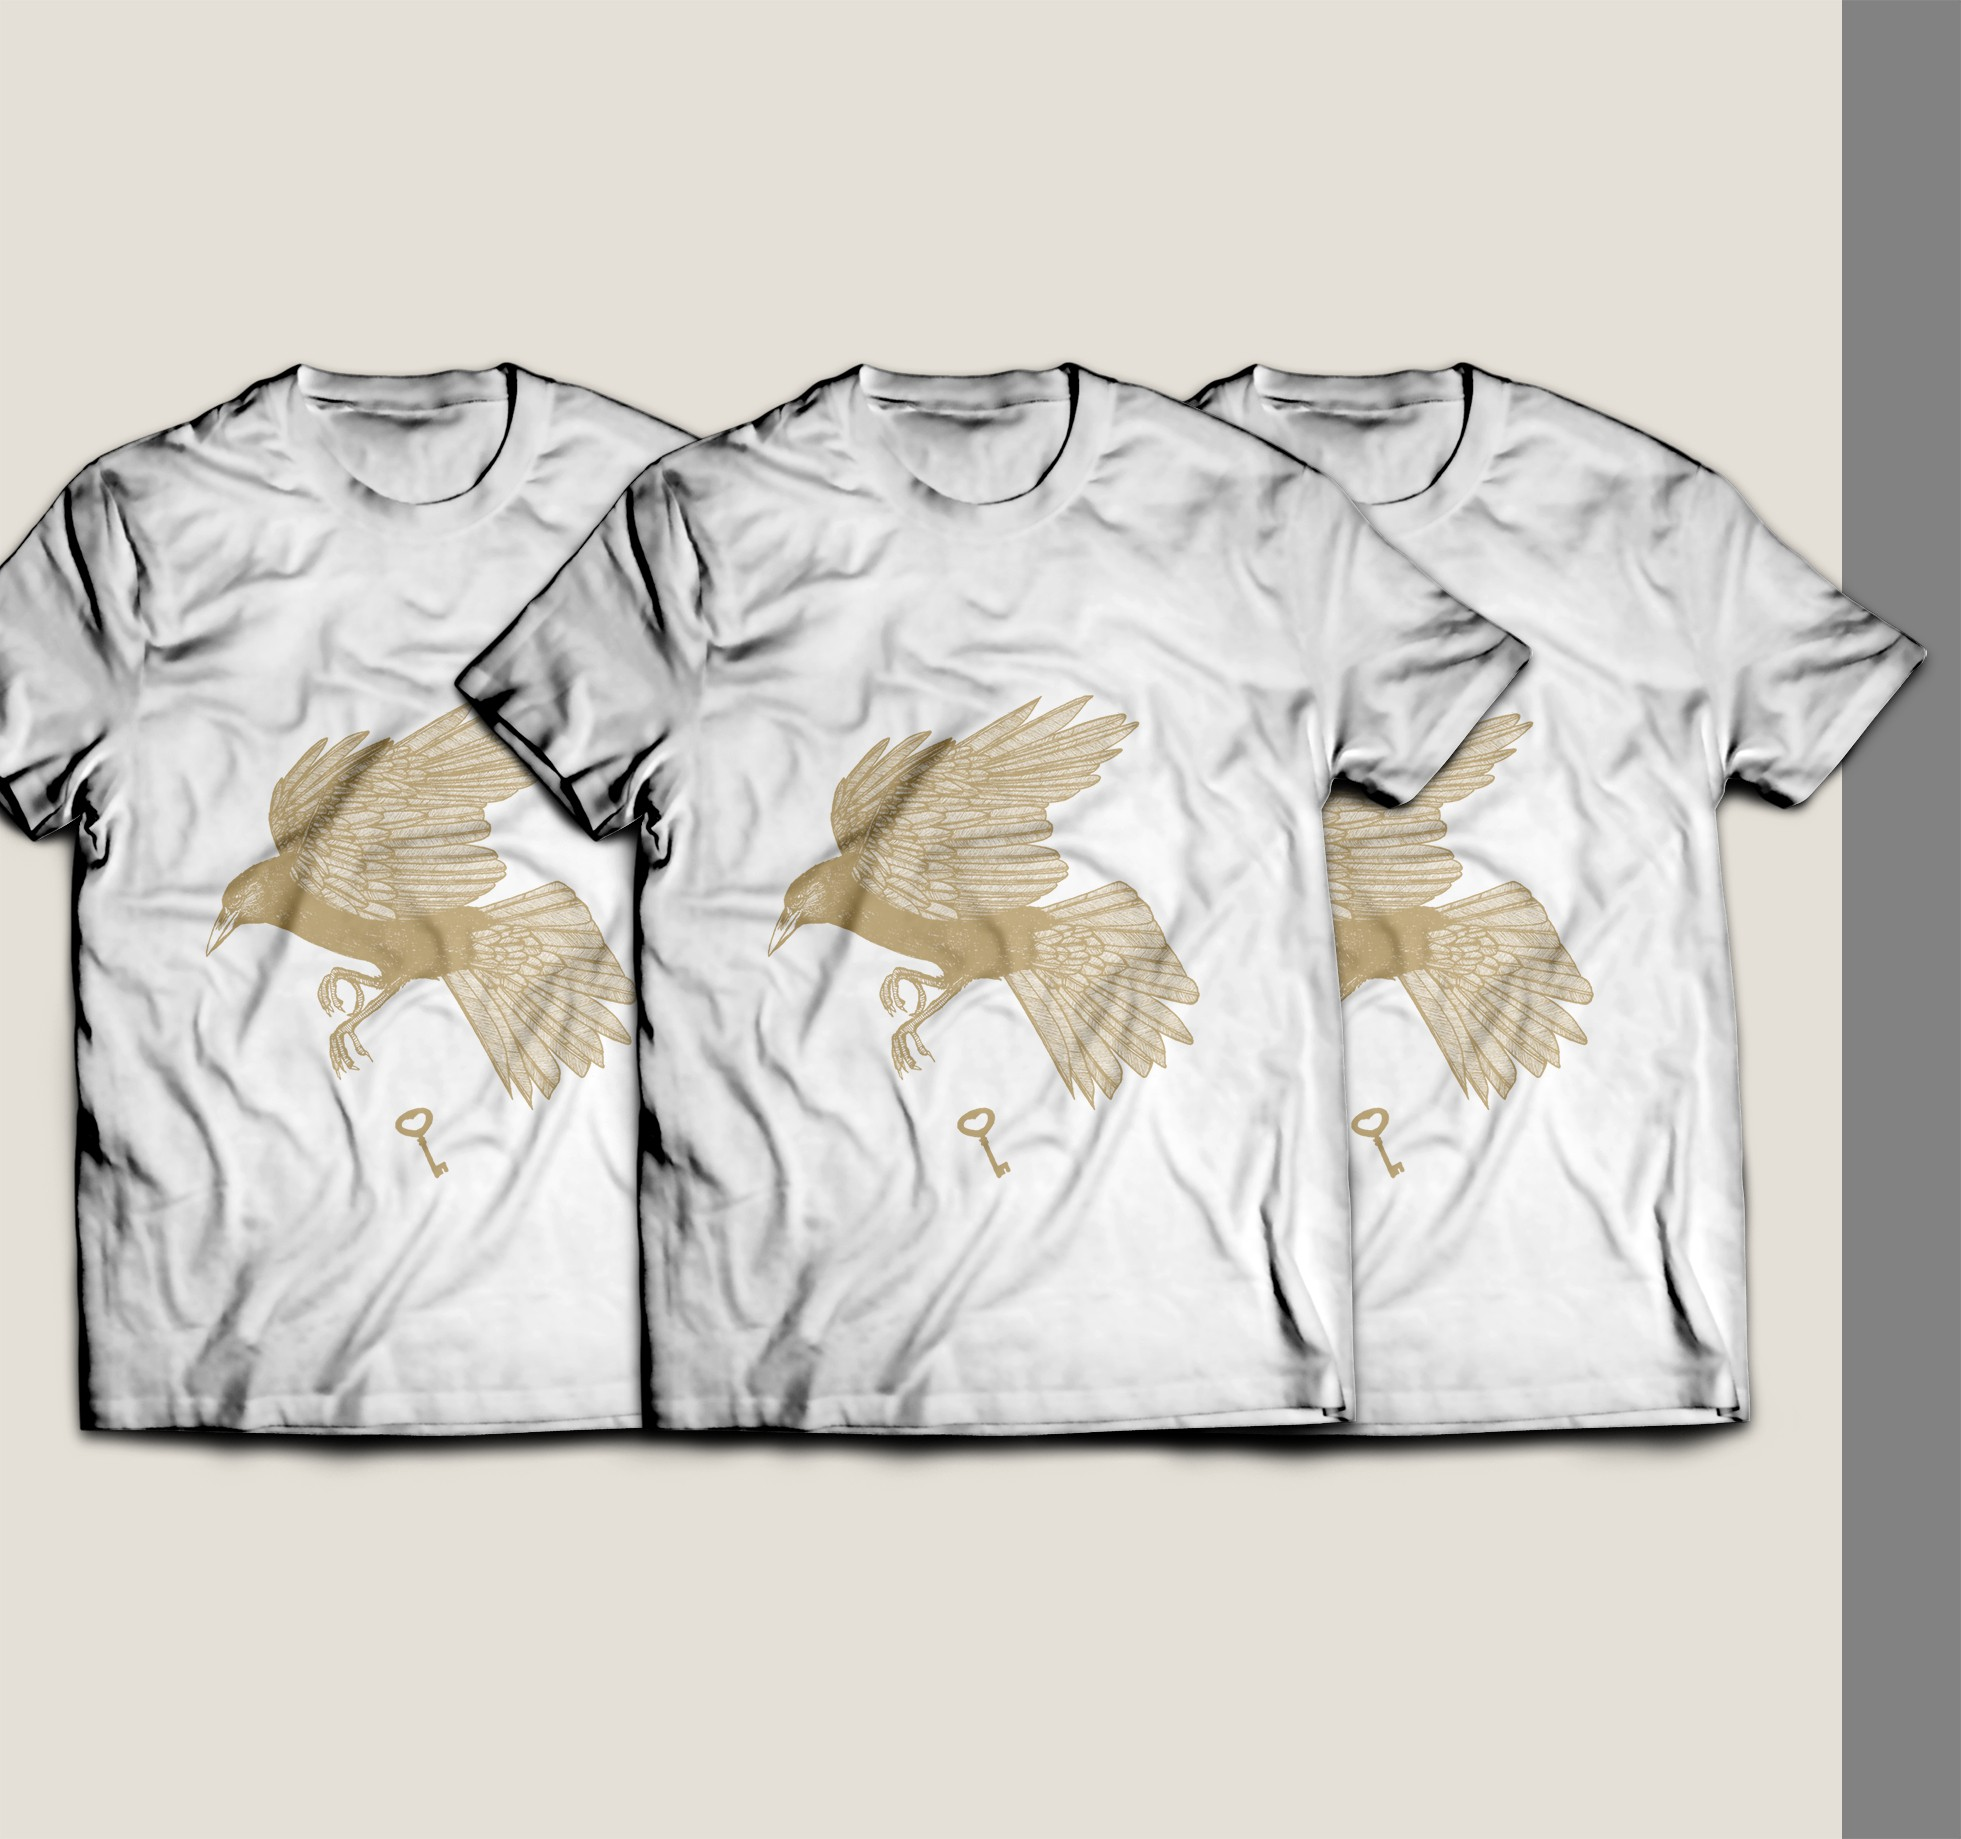 Design an engaging t-shirt layout with an existing illustration element